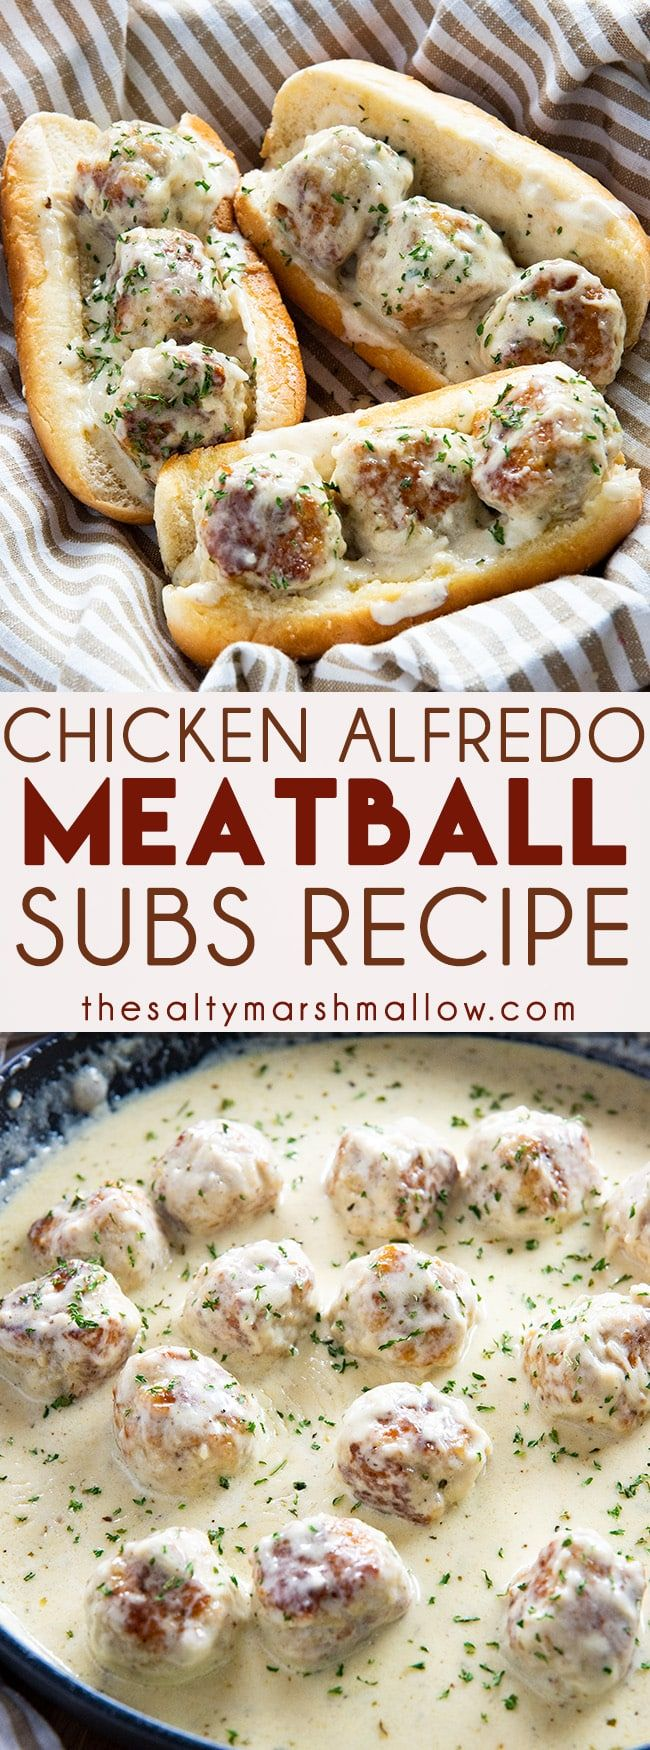 Chicken Alfredo Meatball Subs images